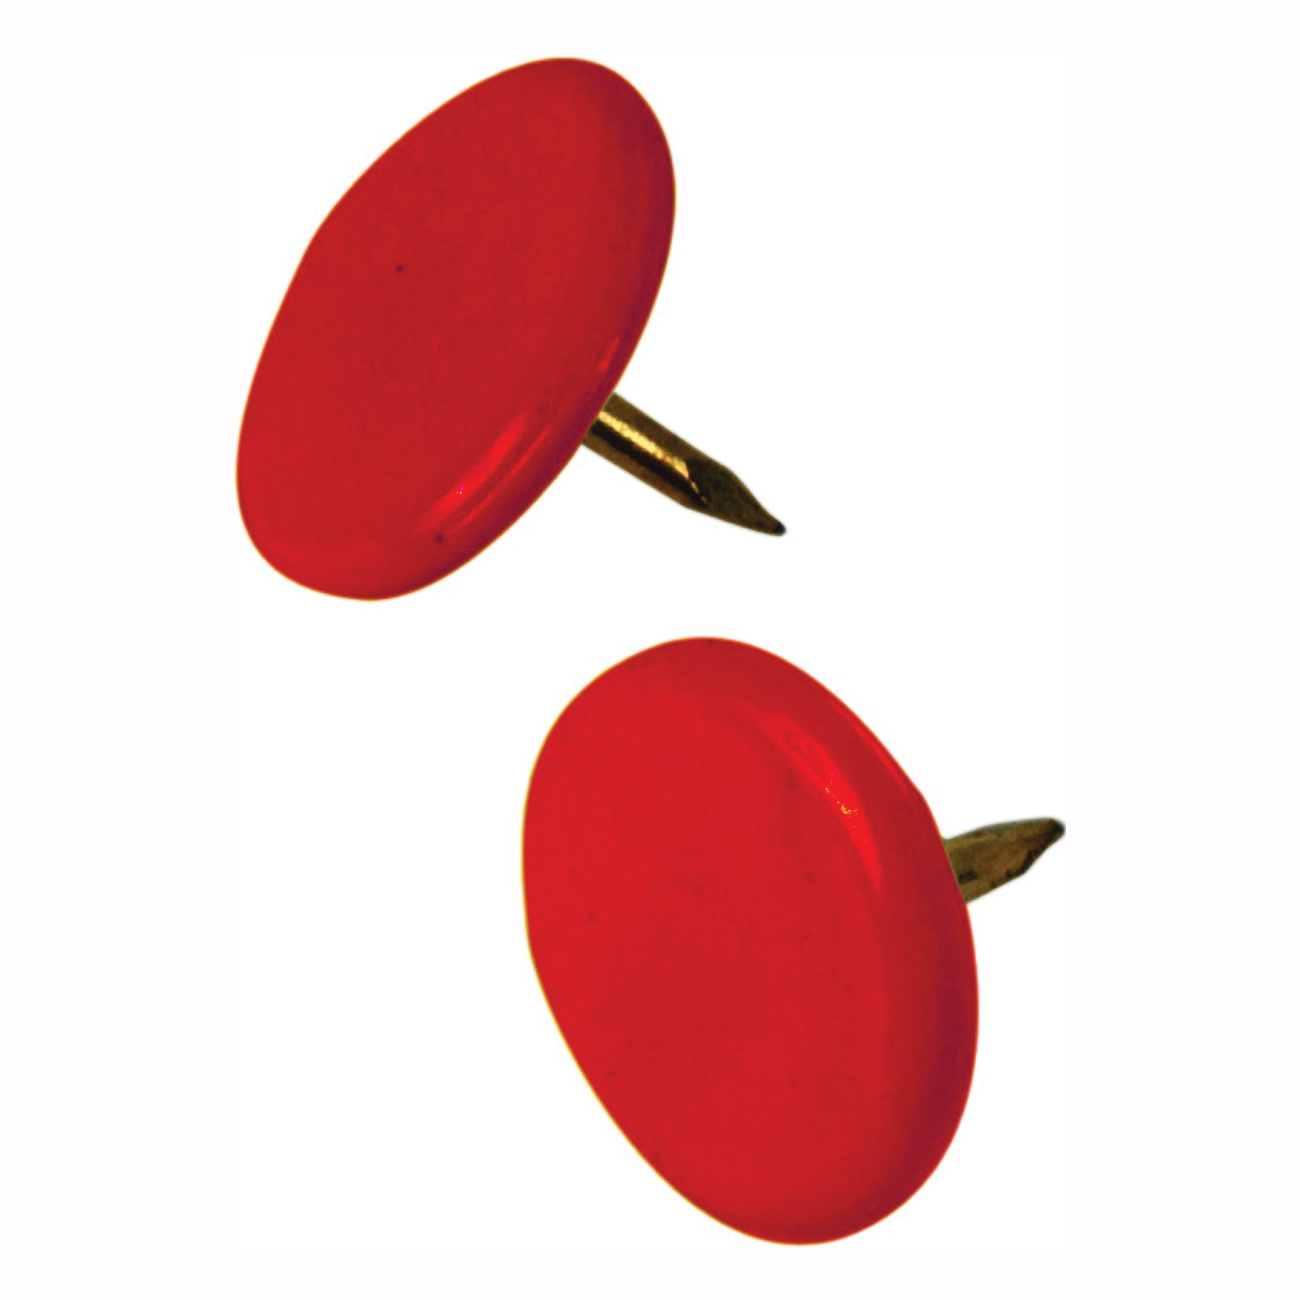 Picture of HILLMAN 122673 Thumb Tack, 15/64 in Shank, Steel, Painted, Red, Cap Head, Sharp Point, Snap-Pak